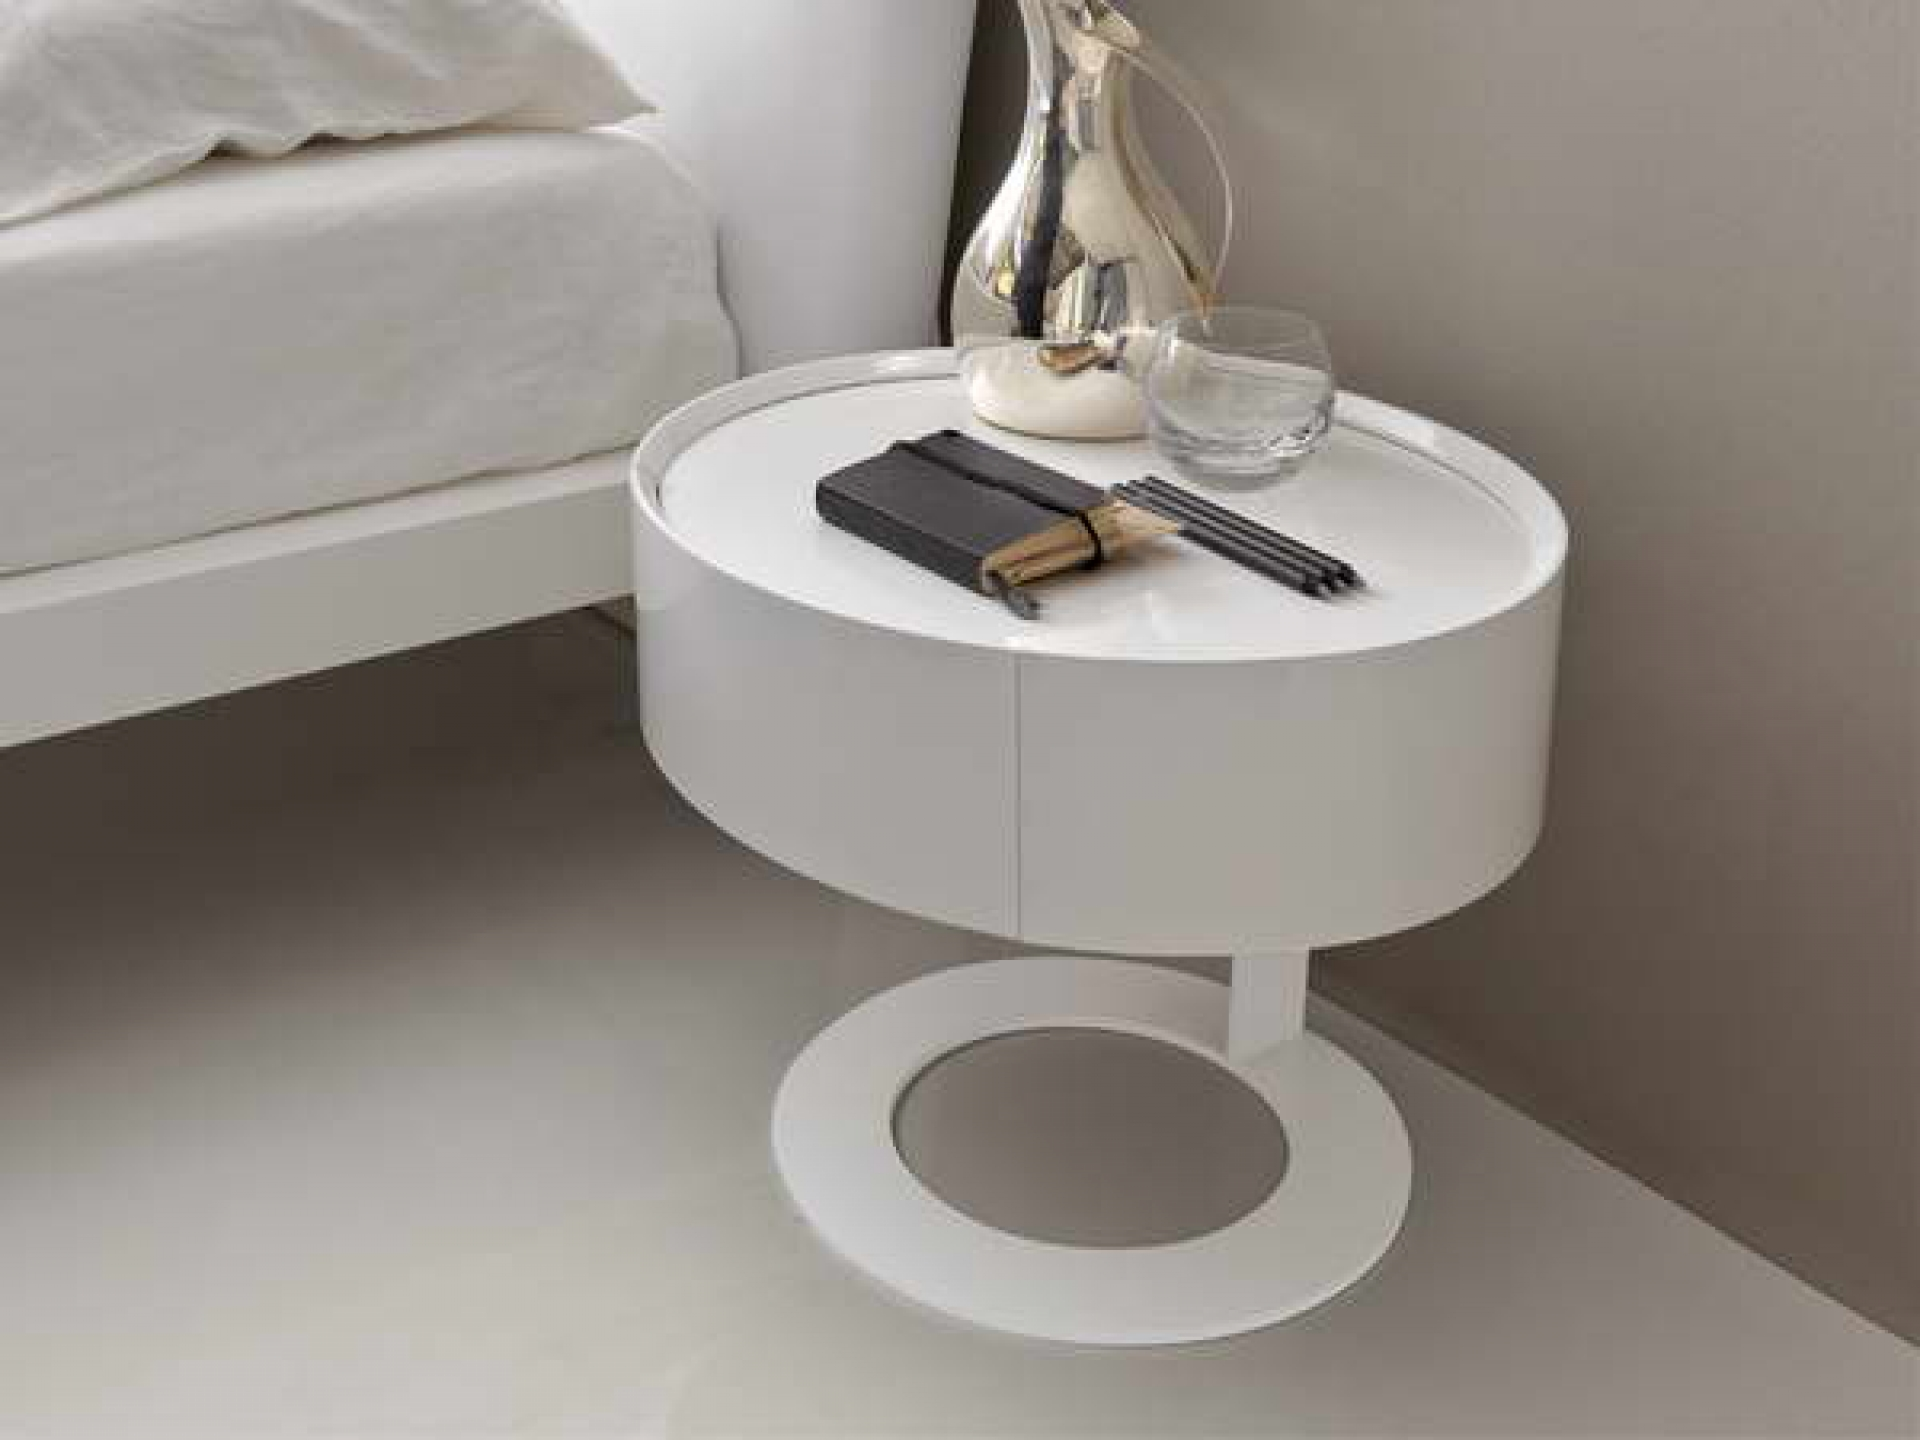 probably terrific great metal circle nightstand ideas hotxpress round white wooden table with base placed the gray interior flooring astonishing side drawer completing your modern